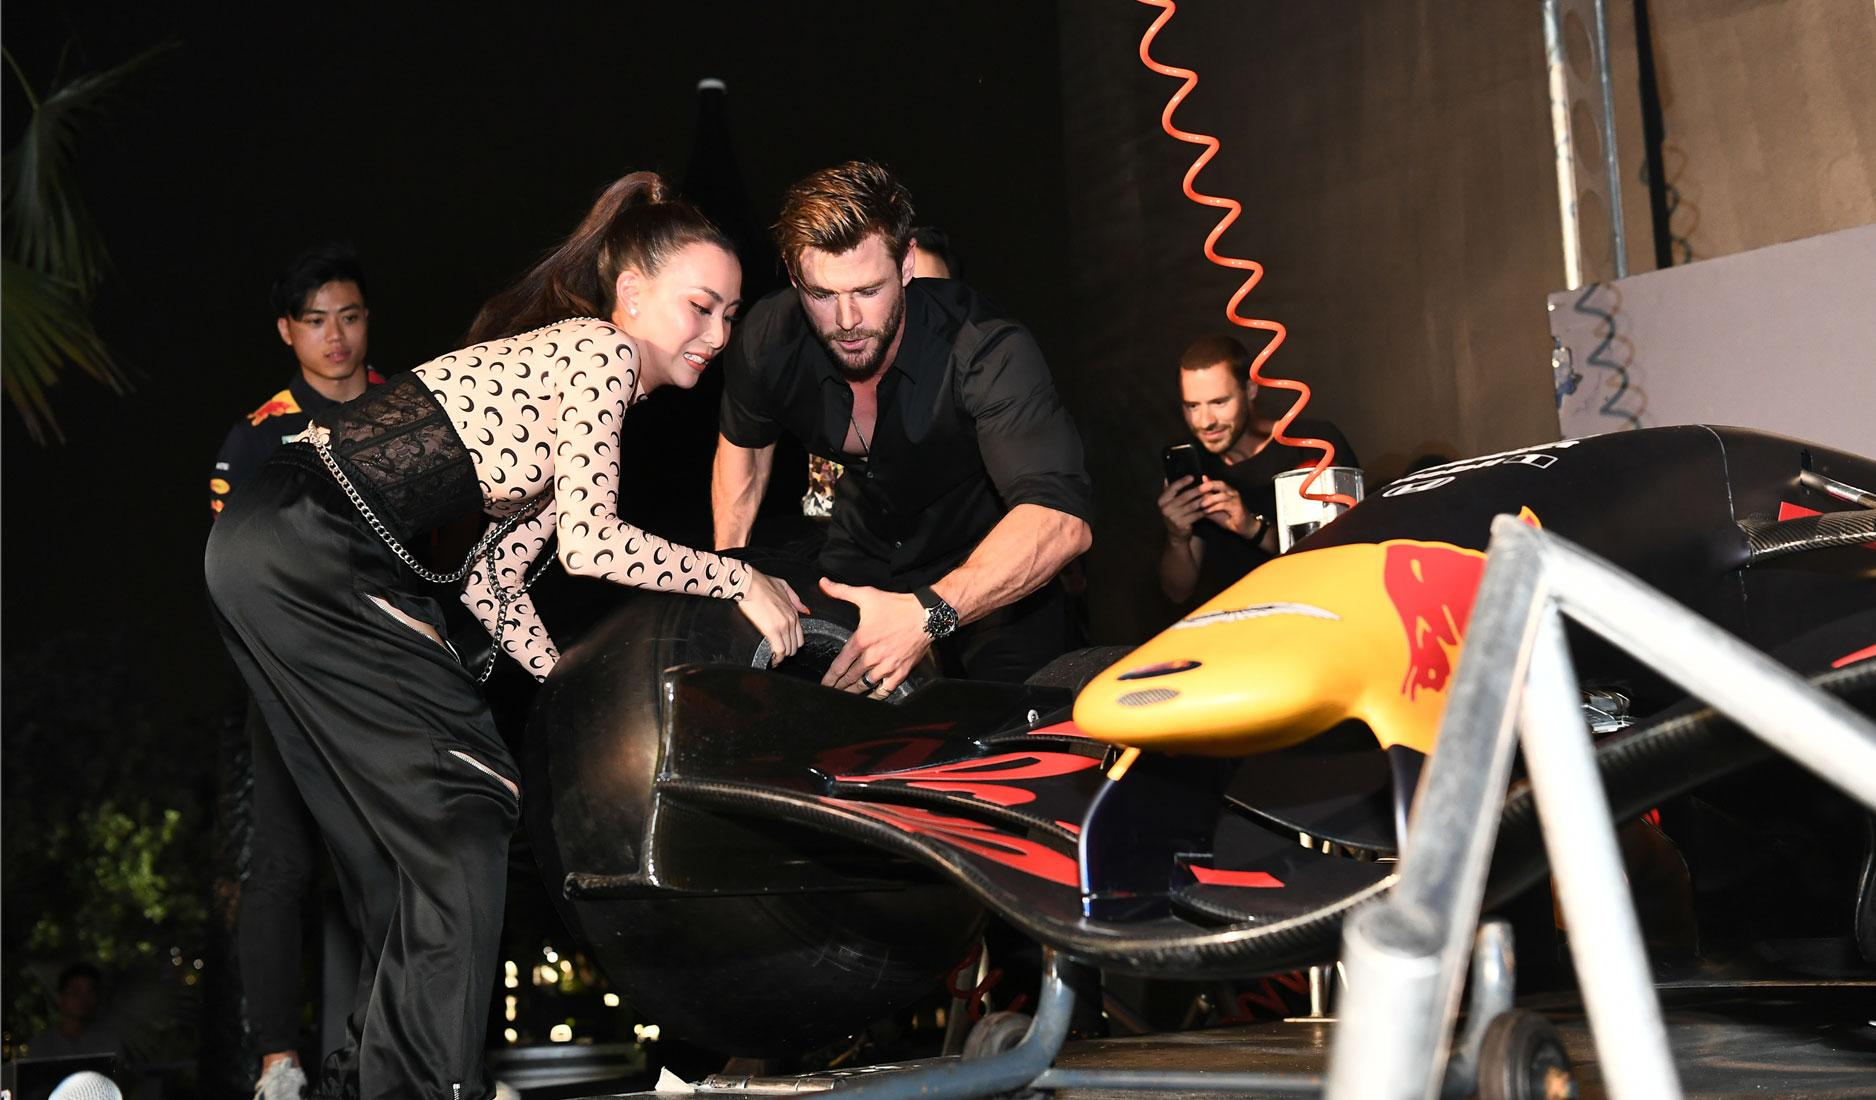 Chris Hemsworth and Sonia Chew changing a car tyre